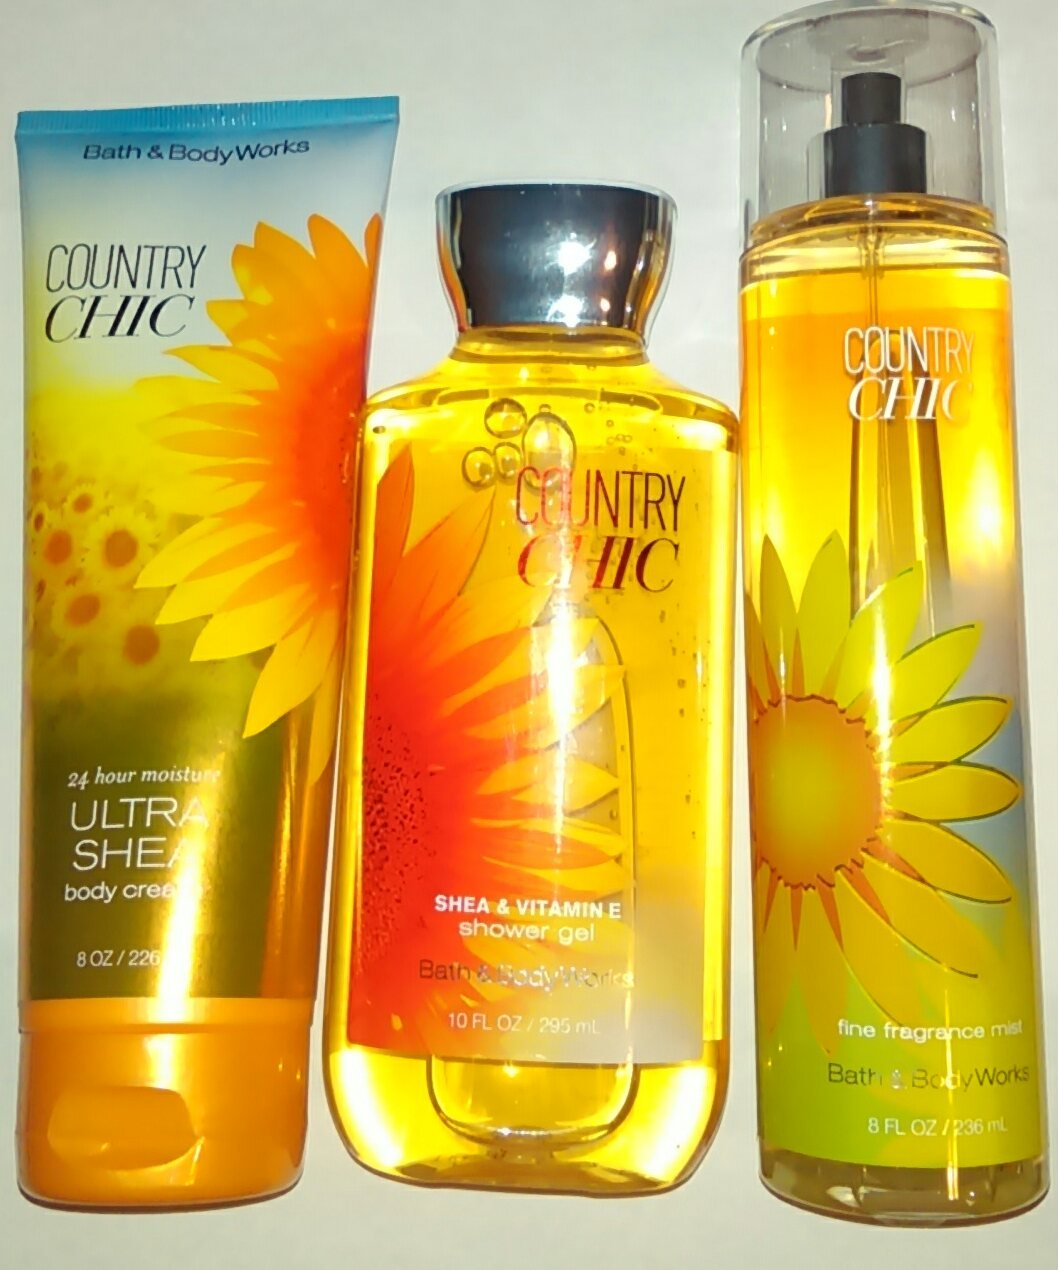 Bath & Body Works Country Chic Shower Gel, Ultra Shea Body Cream & Fine Fragrance Mist